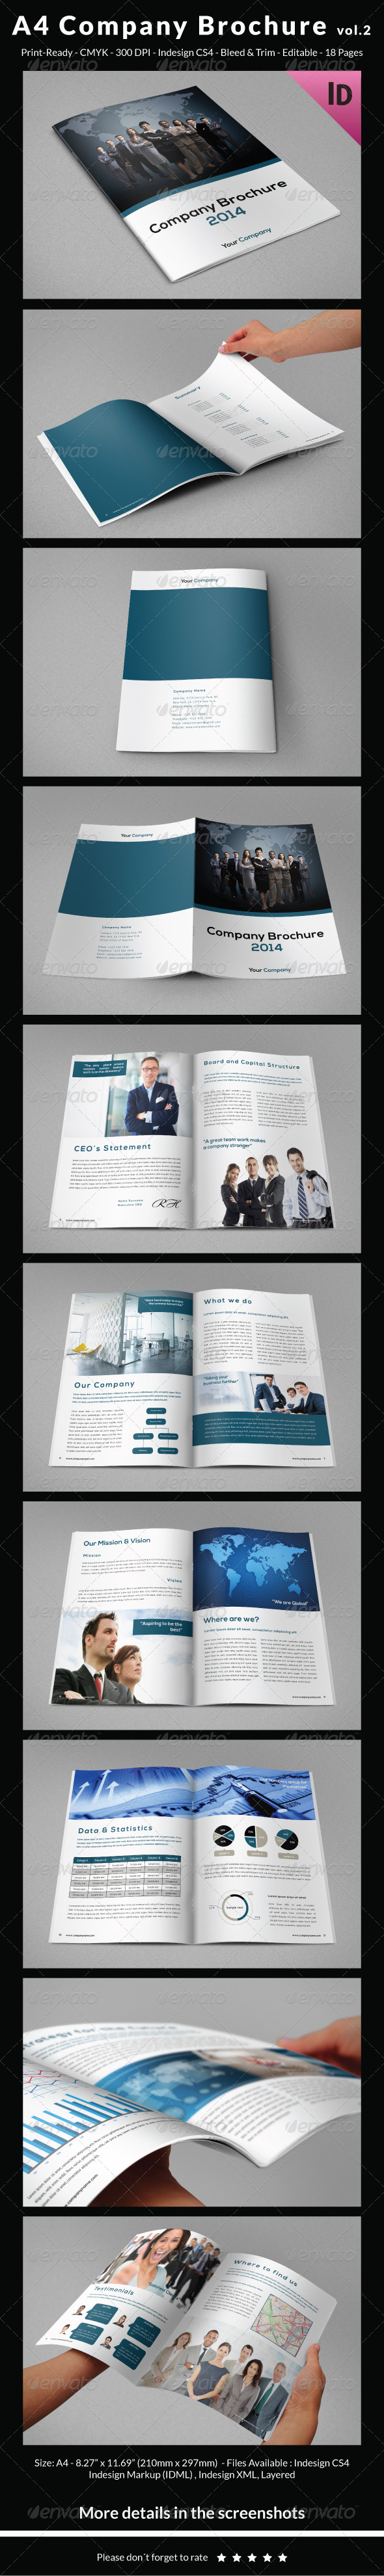 GraphicRiver A4 Company Brochure vol.2 6561098